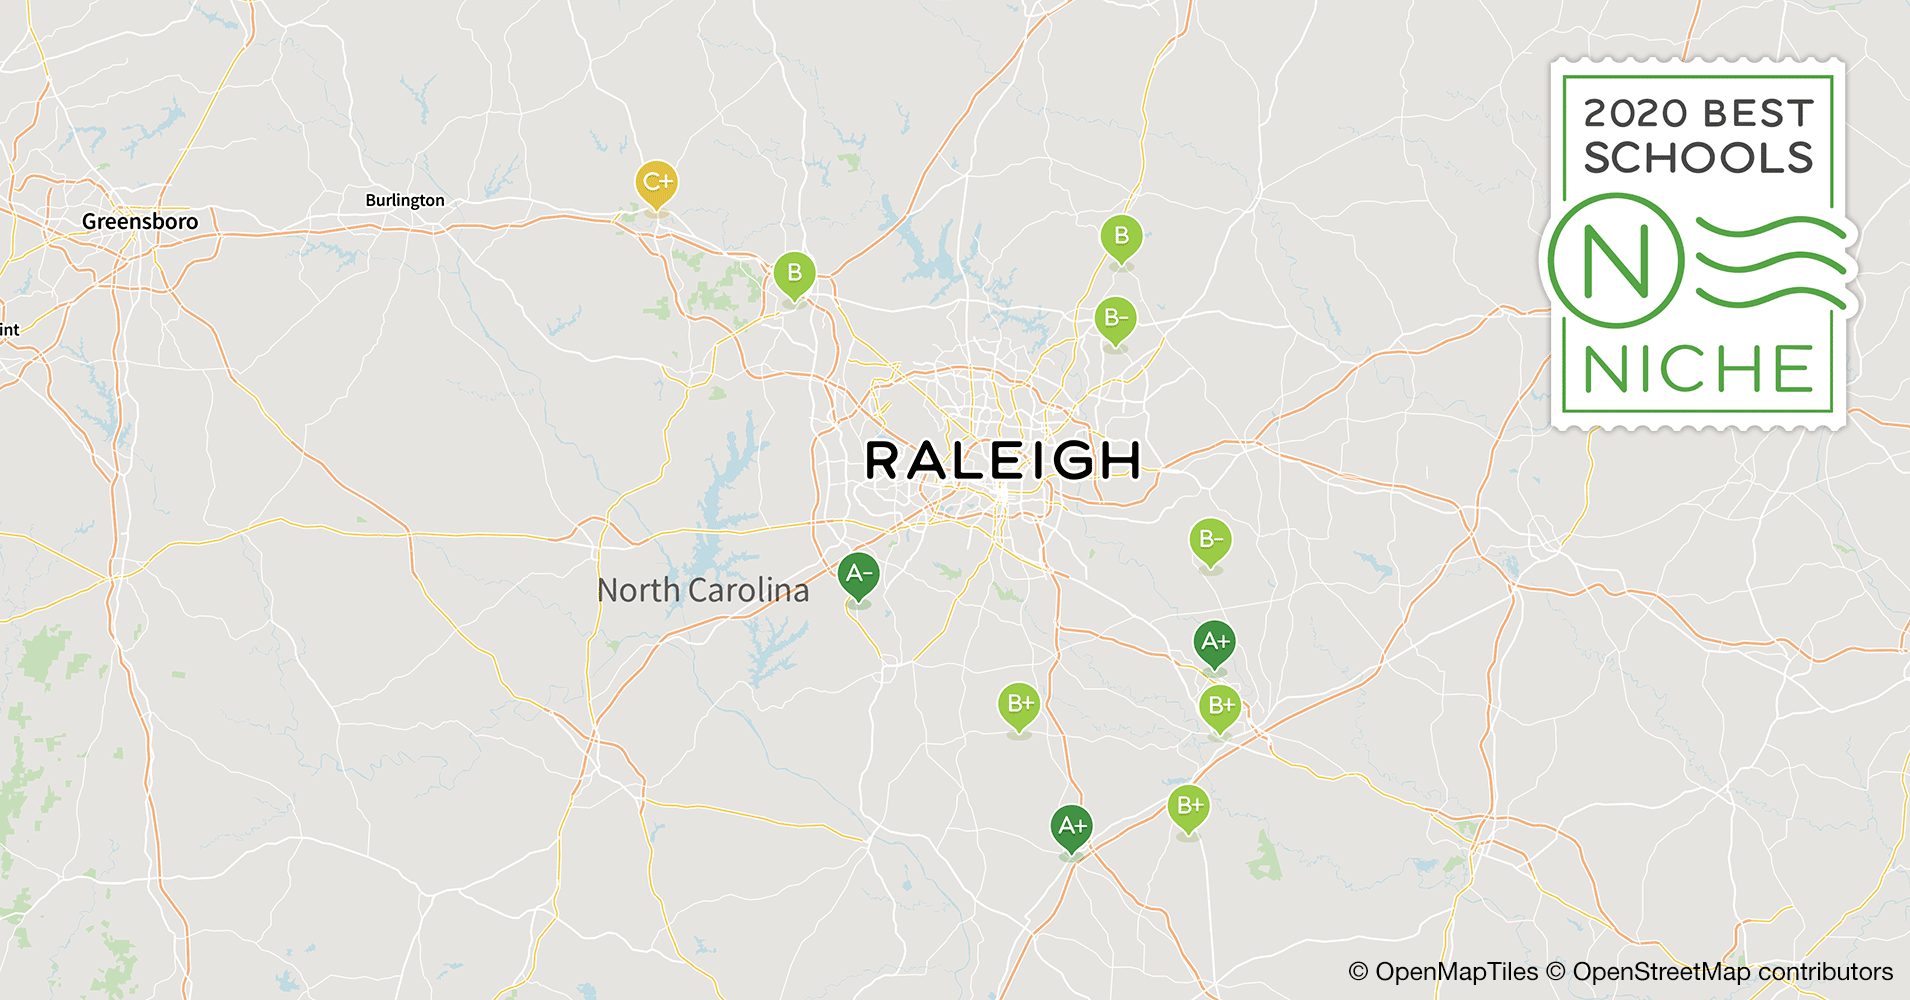 2020 Best Districts in the Raleigh Area - Niche Zip Code Map Wake County Nc on harris county houston zip code map, wake county zip code map pdf, ocean county nj zip code map, washoe county nv zip code map, burlington county nj zip code map, monmouth county nj zip code map, alameda county ca zip code map, frederick county md zip code map, broward county fl zip code map, martin county florida zip code map, maricopa county az zip code map, fairfield county ct zip code map, wake county election districts map, howard county md zip code map, montgomery county md zip code map, dauphin county pa zip code map, clark county nv zip code map, frederick county va zip code map, fulton county ga zip code map,